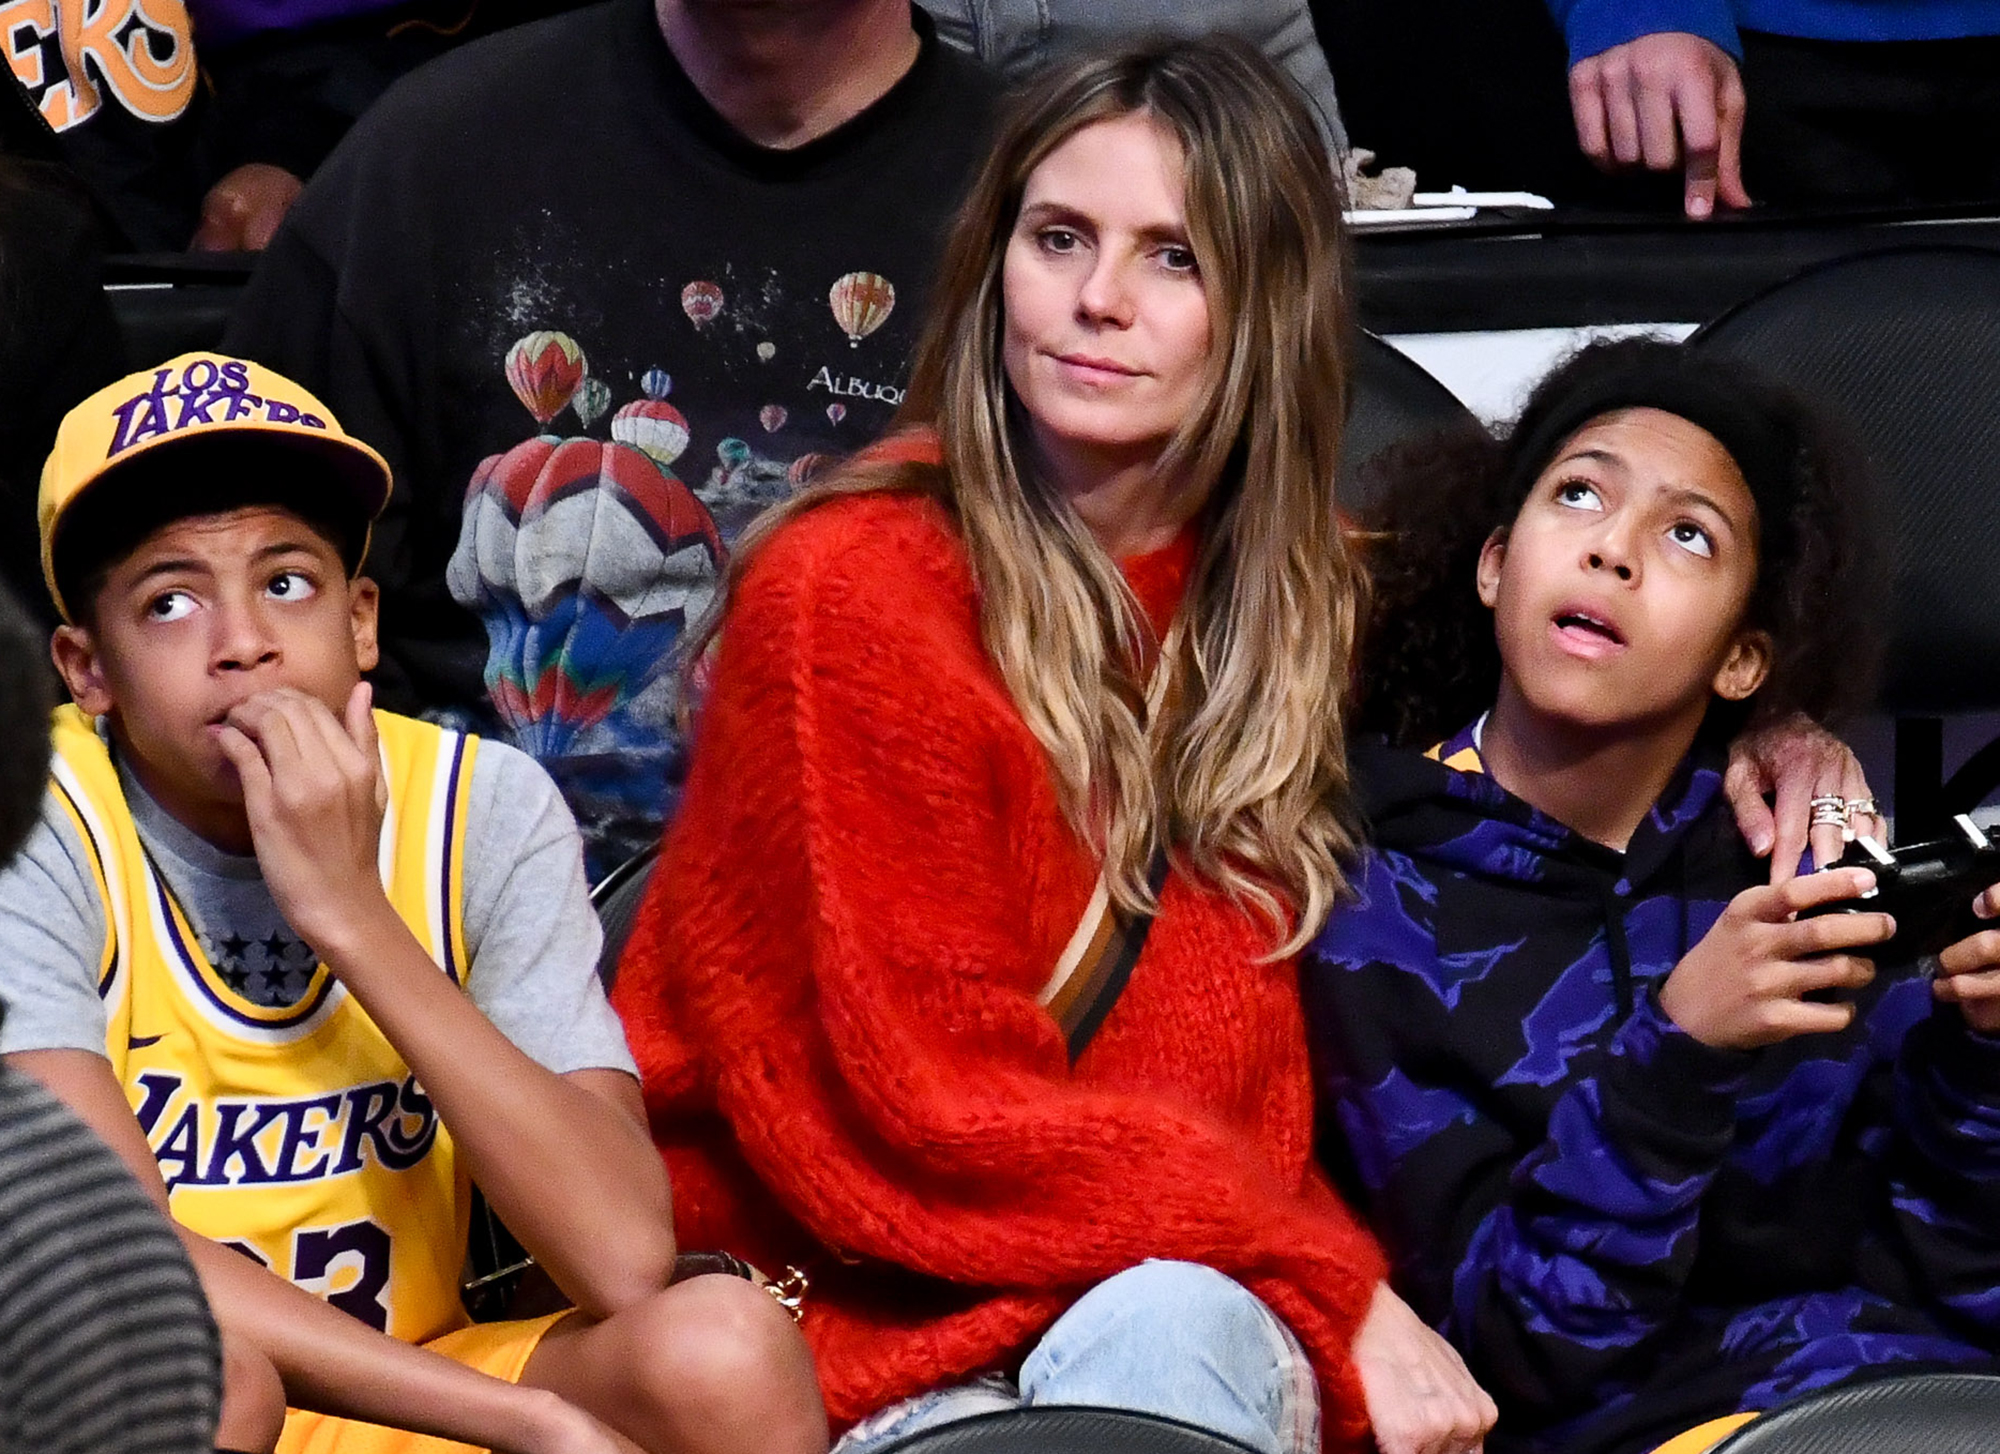 Heidi Klum and Tom Kaulitz Already Have 2 Bridesmaids and 2 Groomsmen in Their Wedding - Heidi Klum and her kids Henry Samuel and Lou Samuel attend a basketball game between the Los Angeles Lakers and the Minnesota Timberwolves at Staples Center on January 24, 2019 in Los Angeles, California.